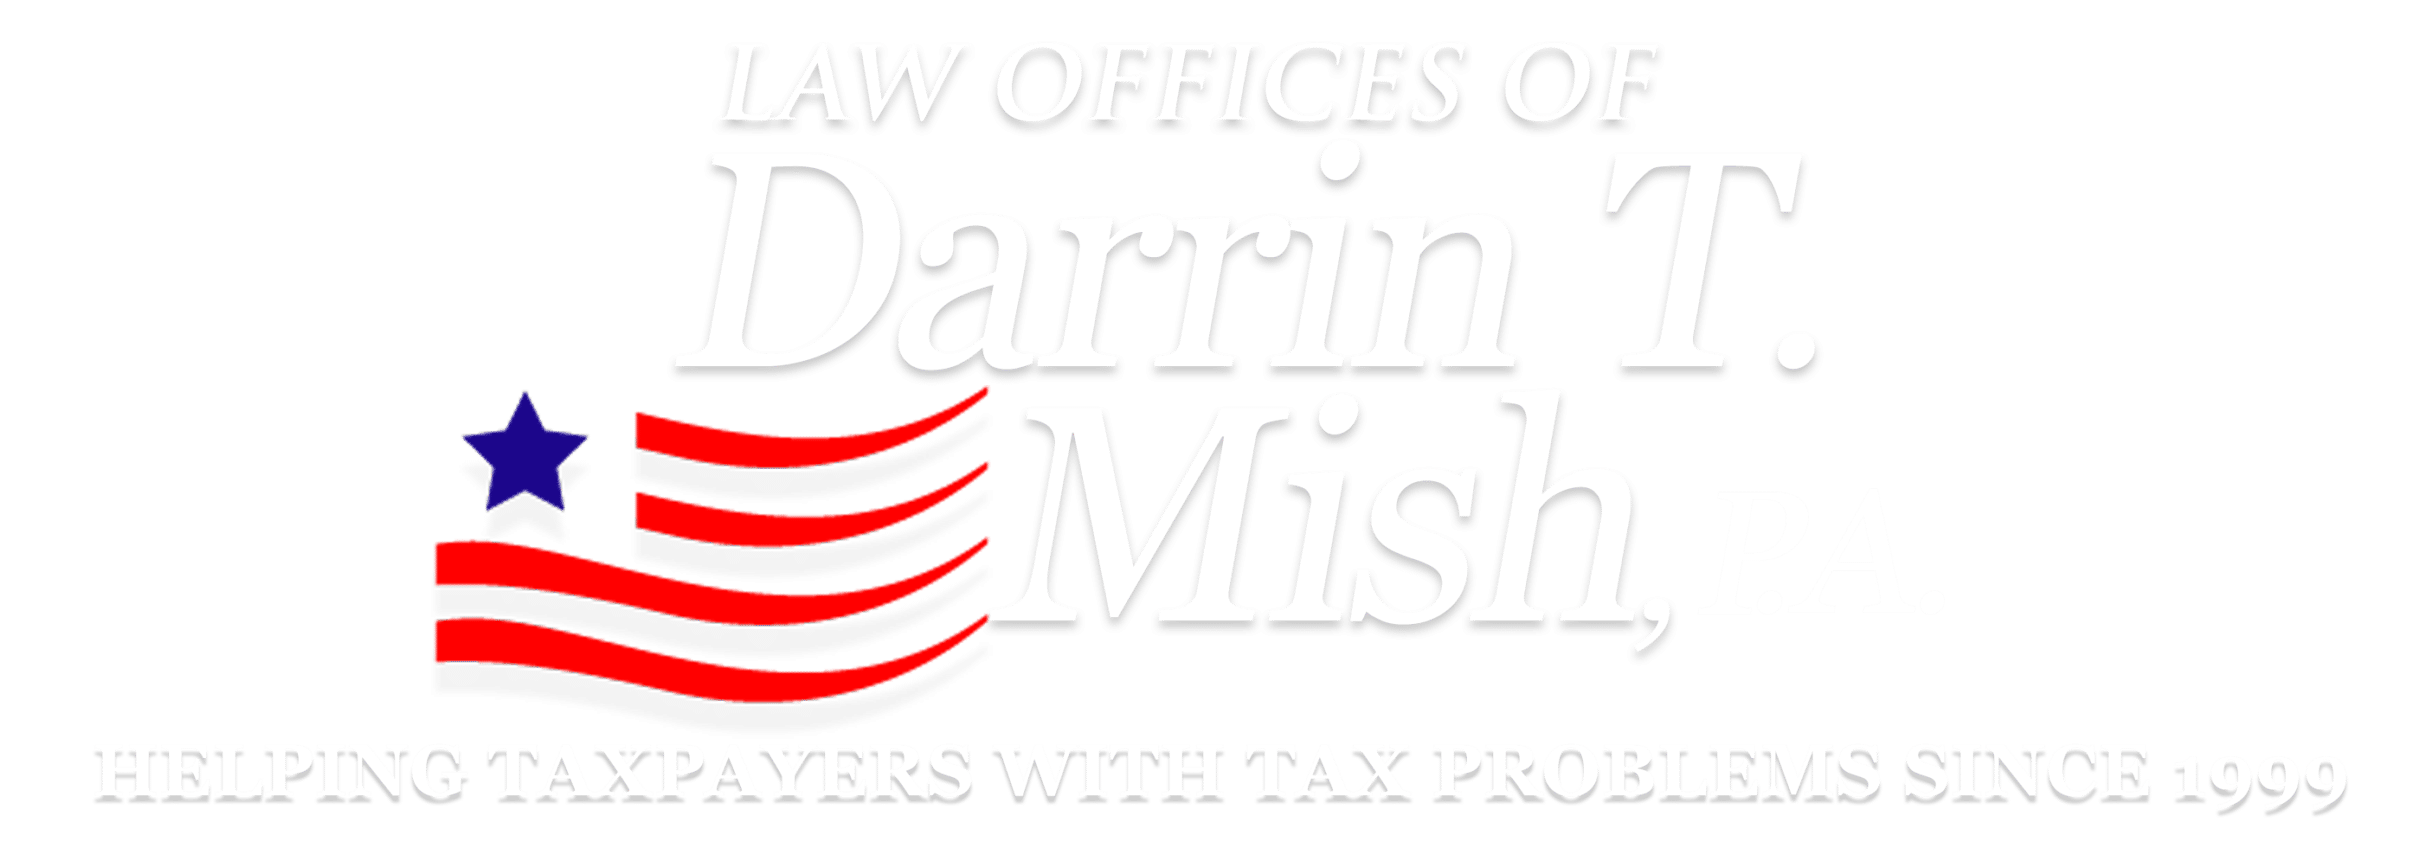 Law Offices of Darrin T. Mish, P.A. Logo